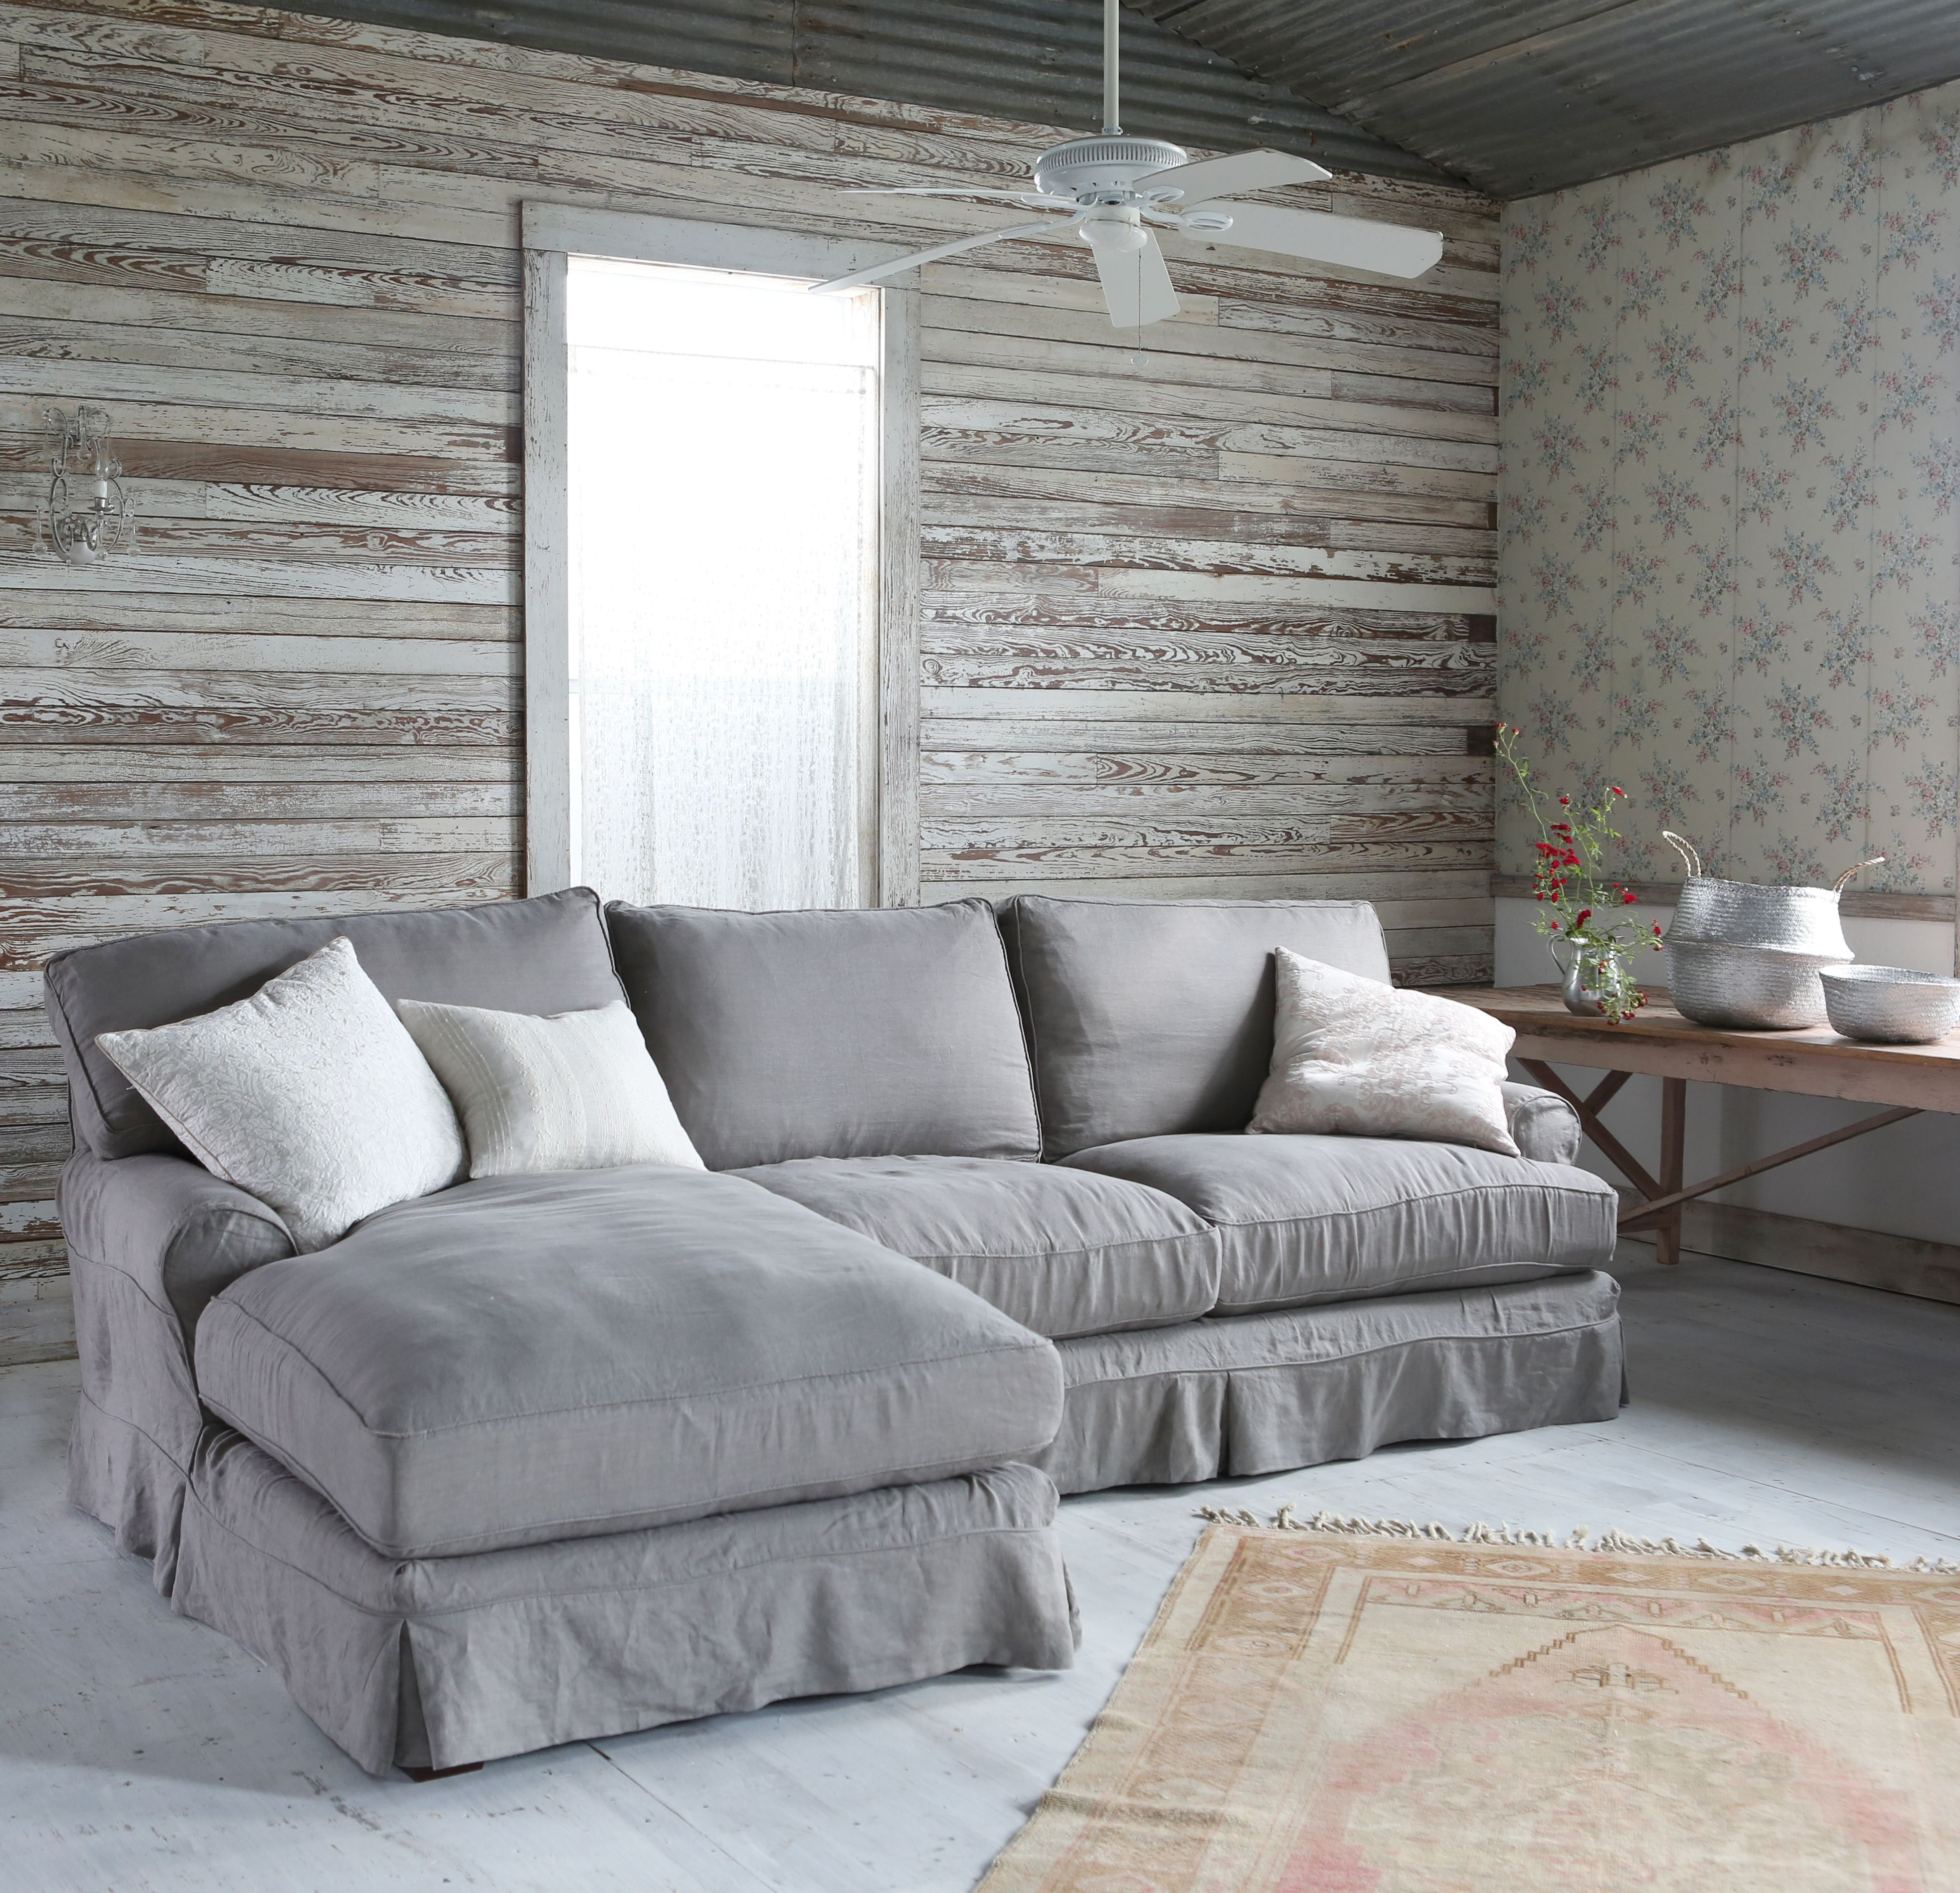 Squishy Sectional Sofa  Living Rooms Shabby And Room Enchanting Living Room Sectional Design Ideas 2018